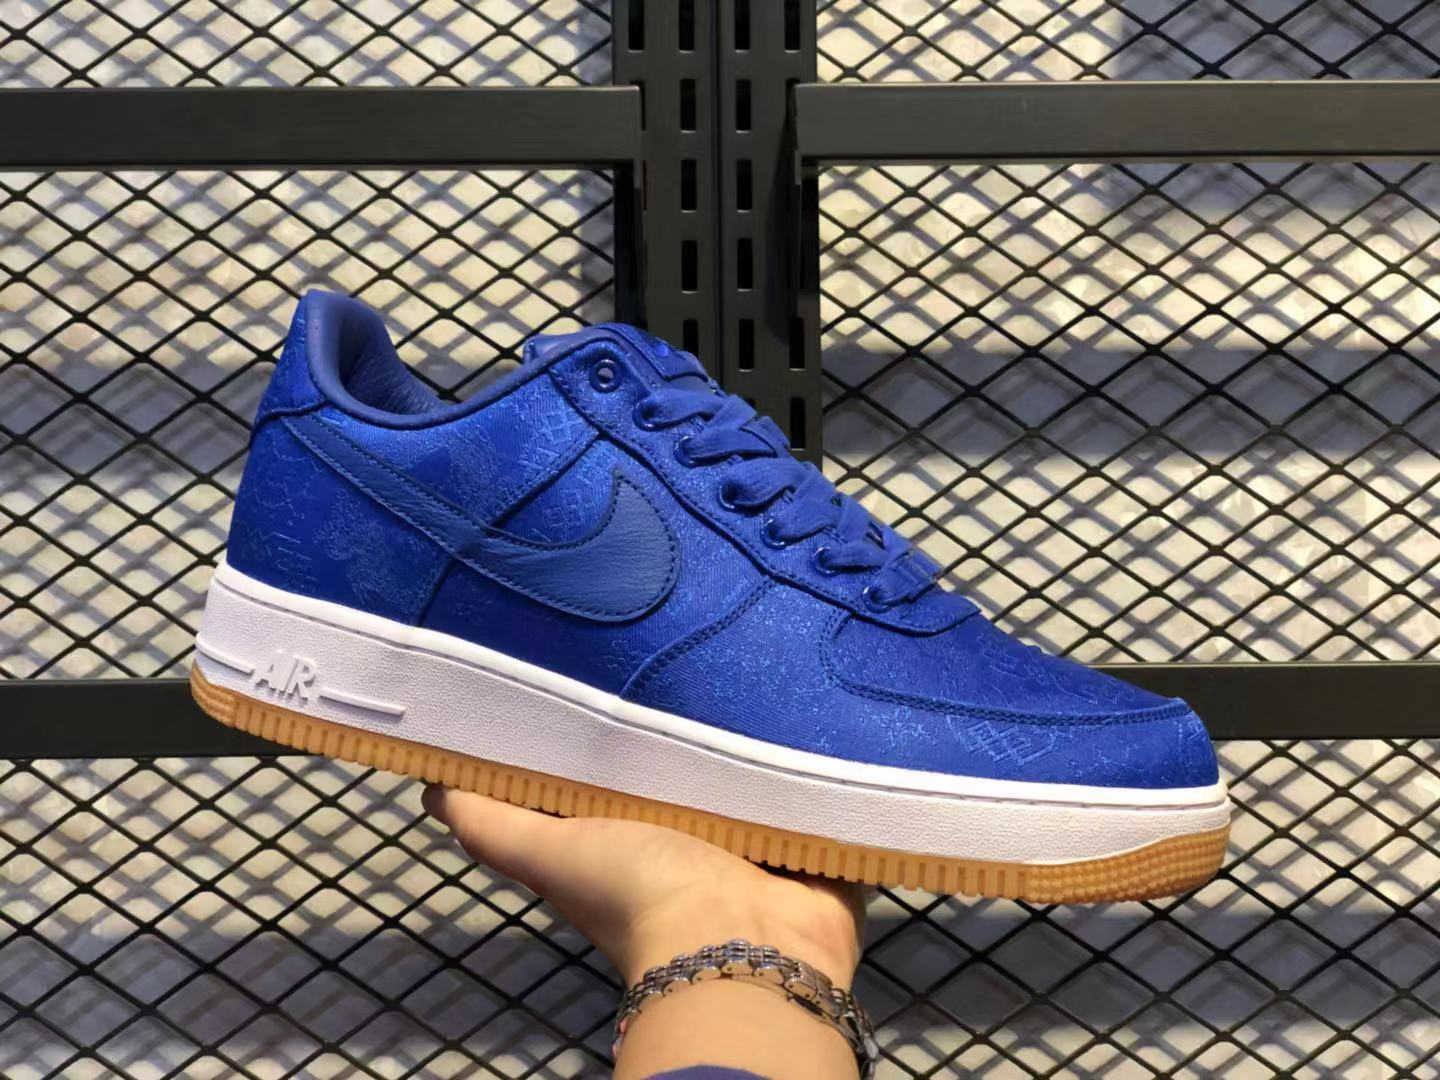 CLOT x Nike Air Force 1 University Blue/White/Gum Sneakers Hot Selling